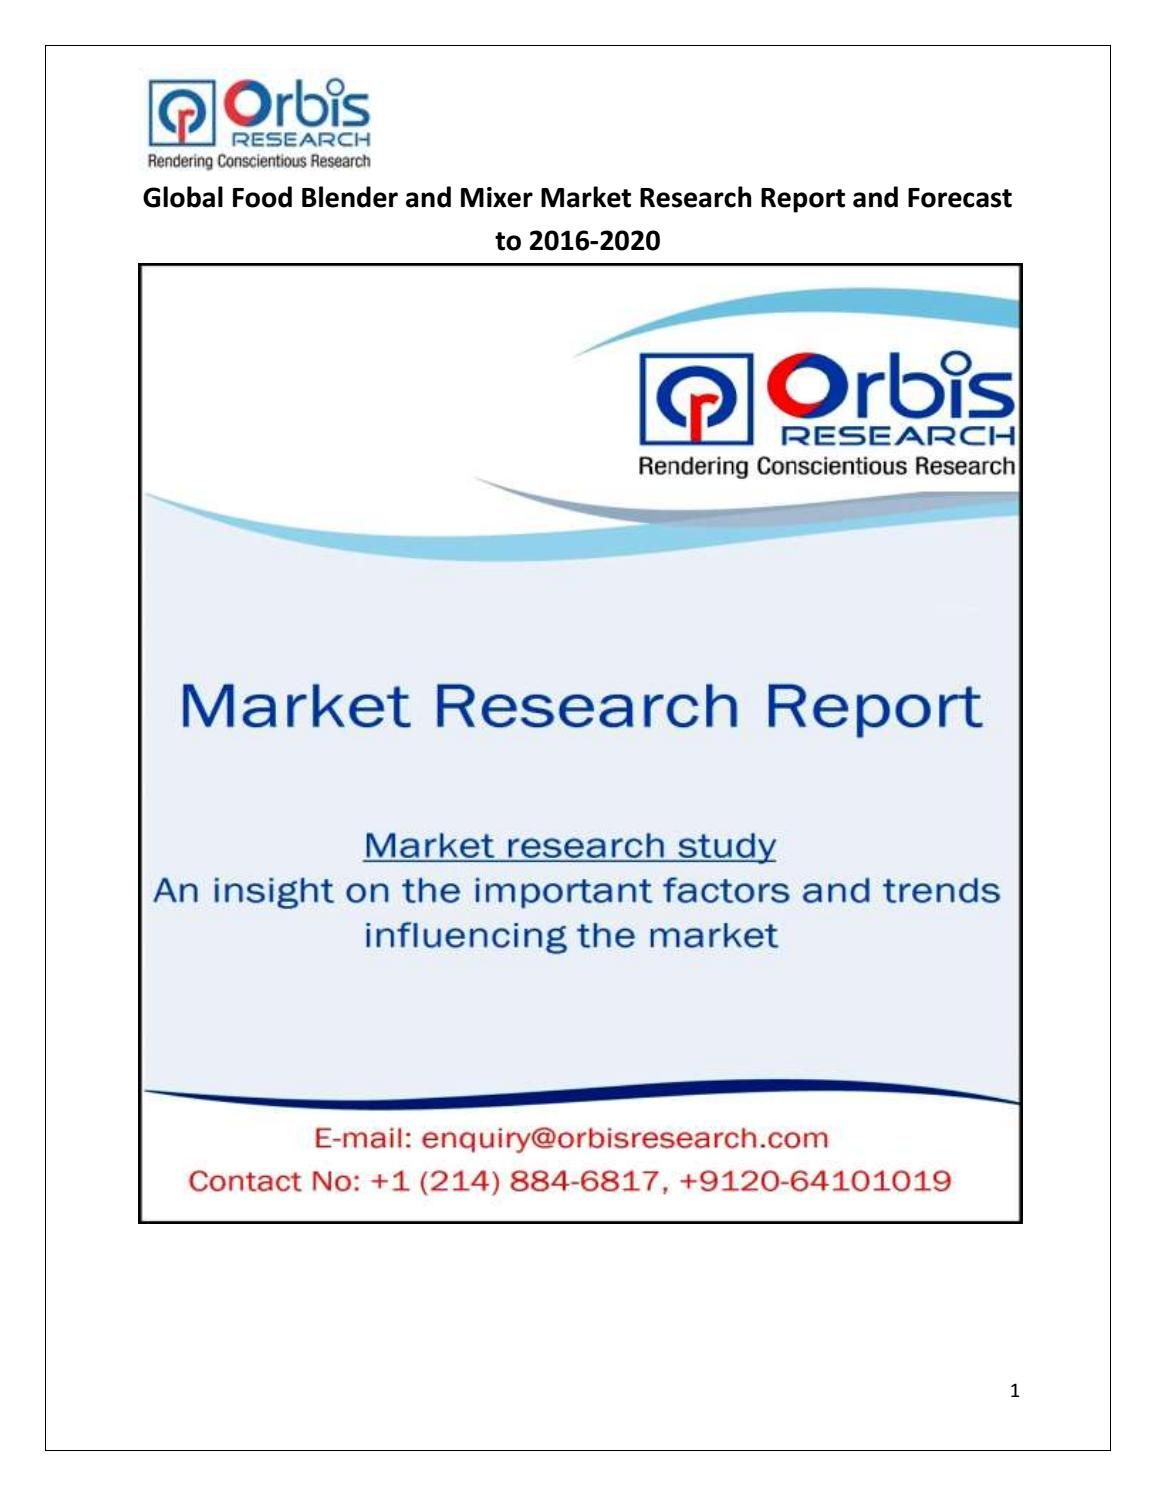 2016 Global Food Blender and Mixer Market Research Study